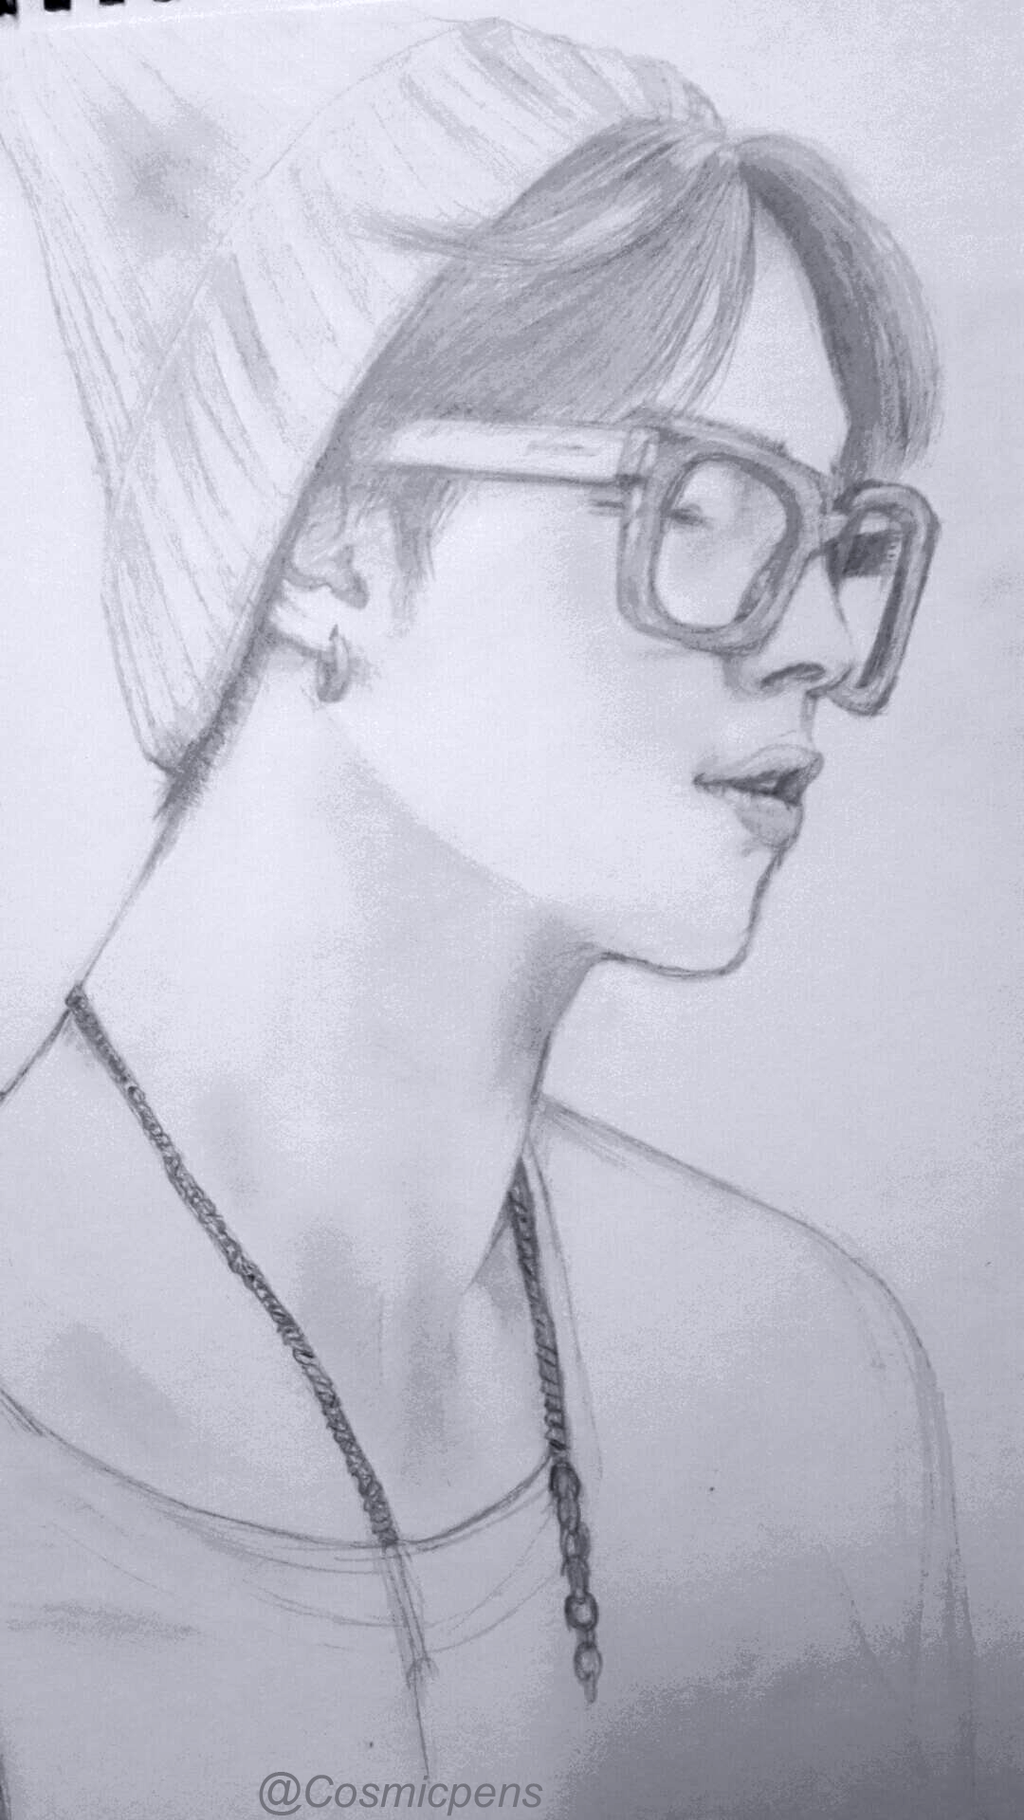 Jimin Sketch By Cosmicpens On DeviantArt